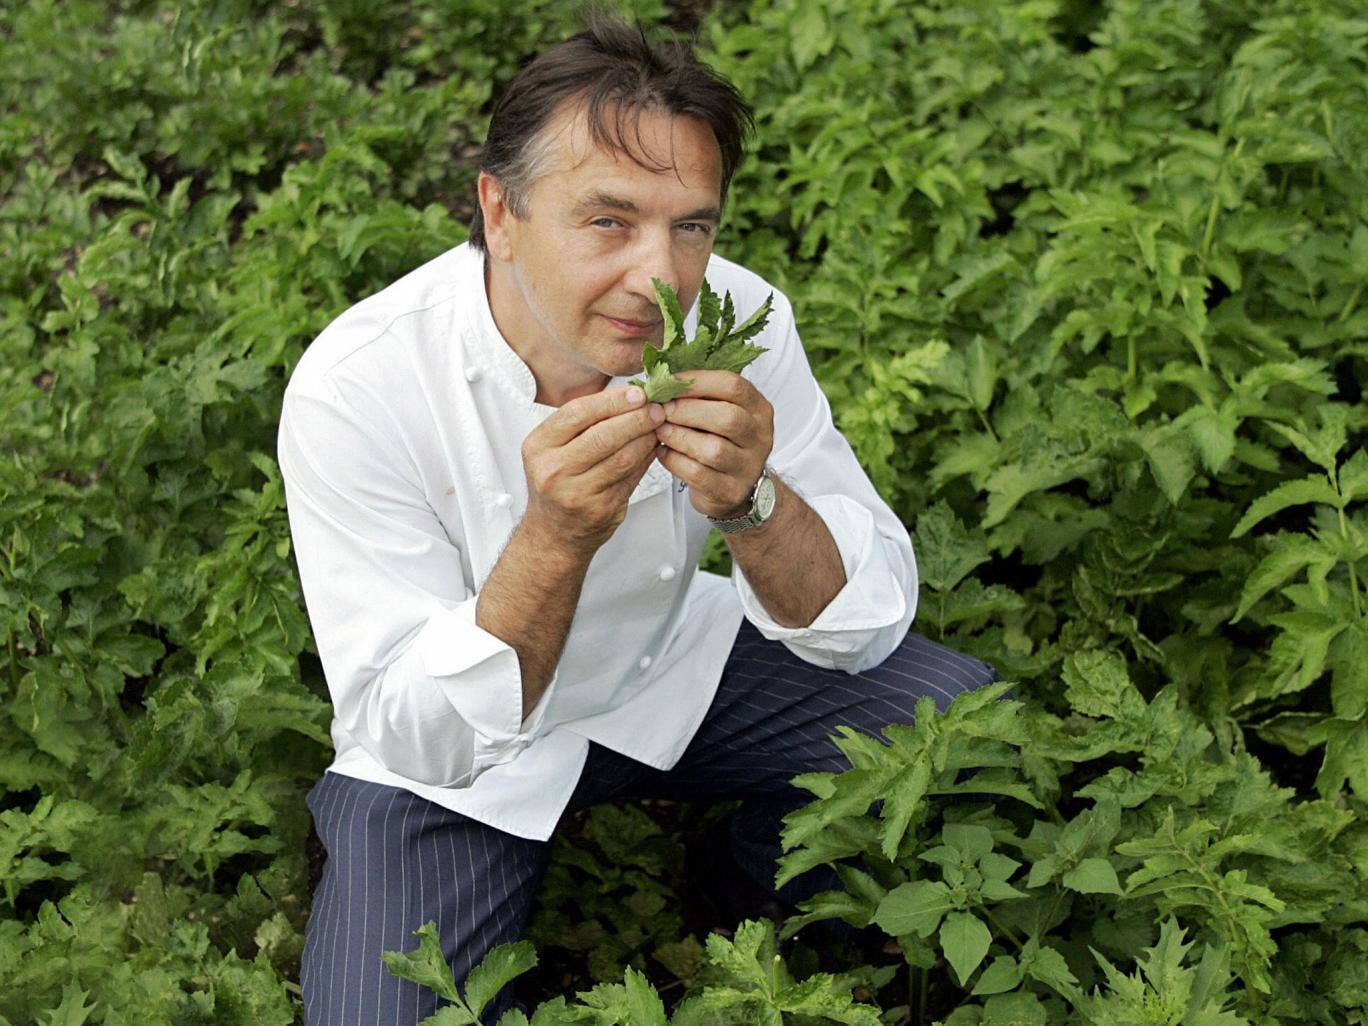 Raymond Blanc has called for gardening lessons to be made compulsory in schools